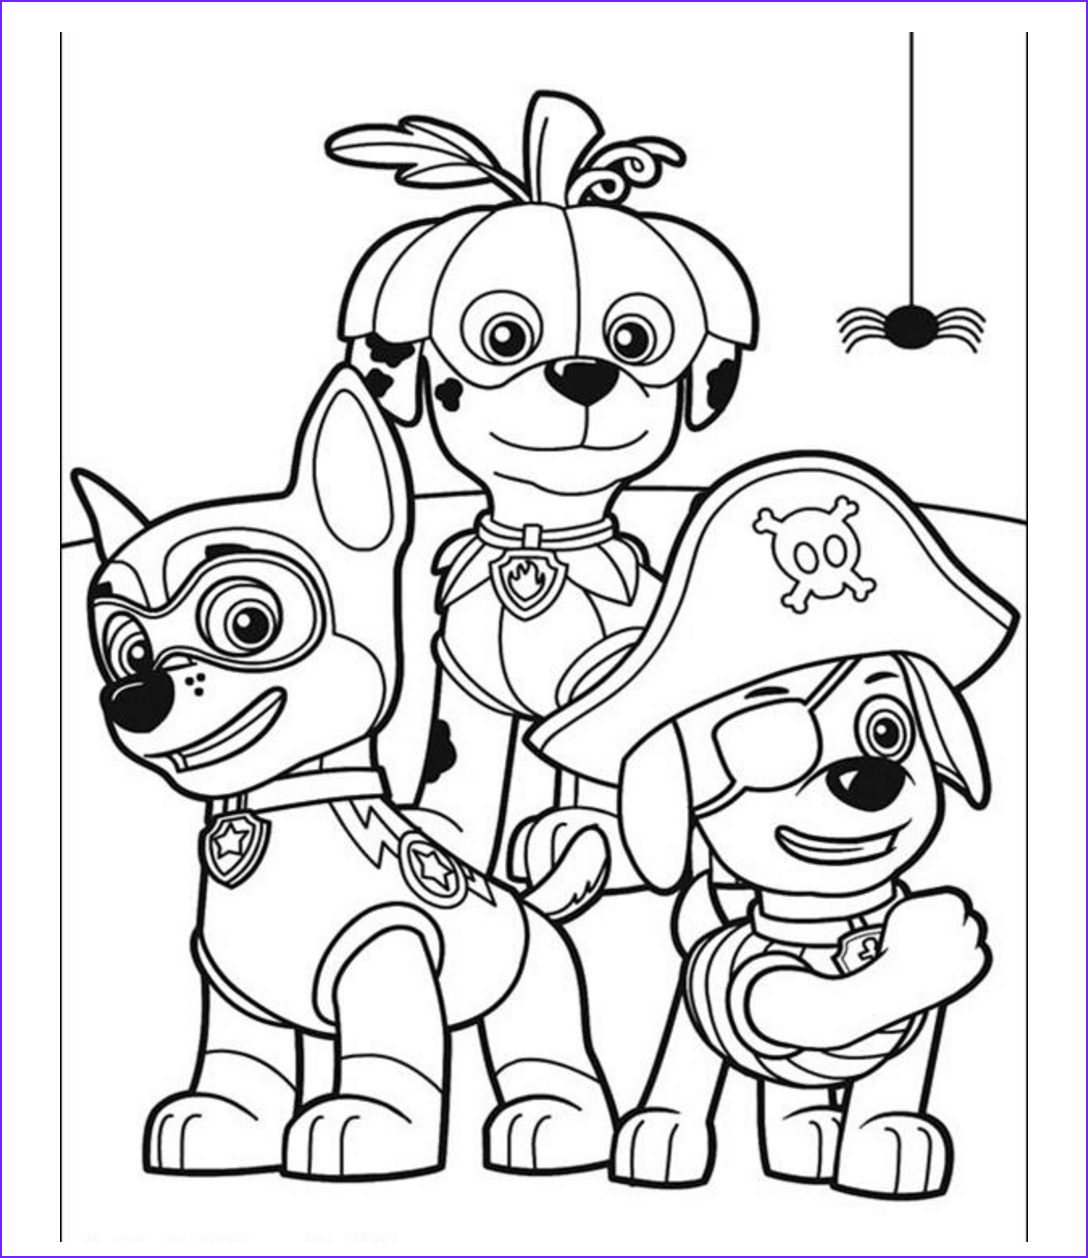 Paw Patrol Coloring Books Awesome Photos Paw Patrol On Halloween Coloring Pages Prente